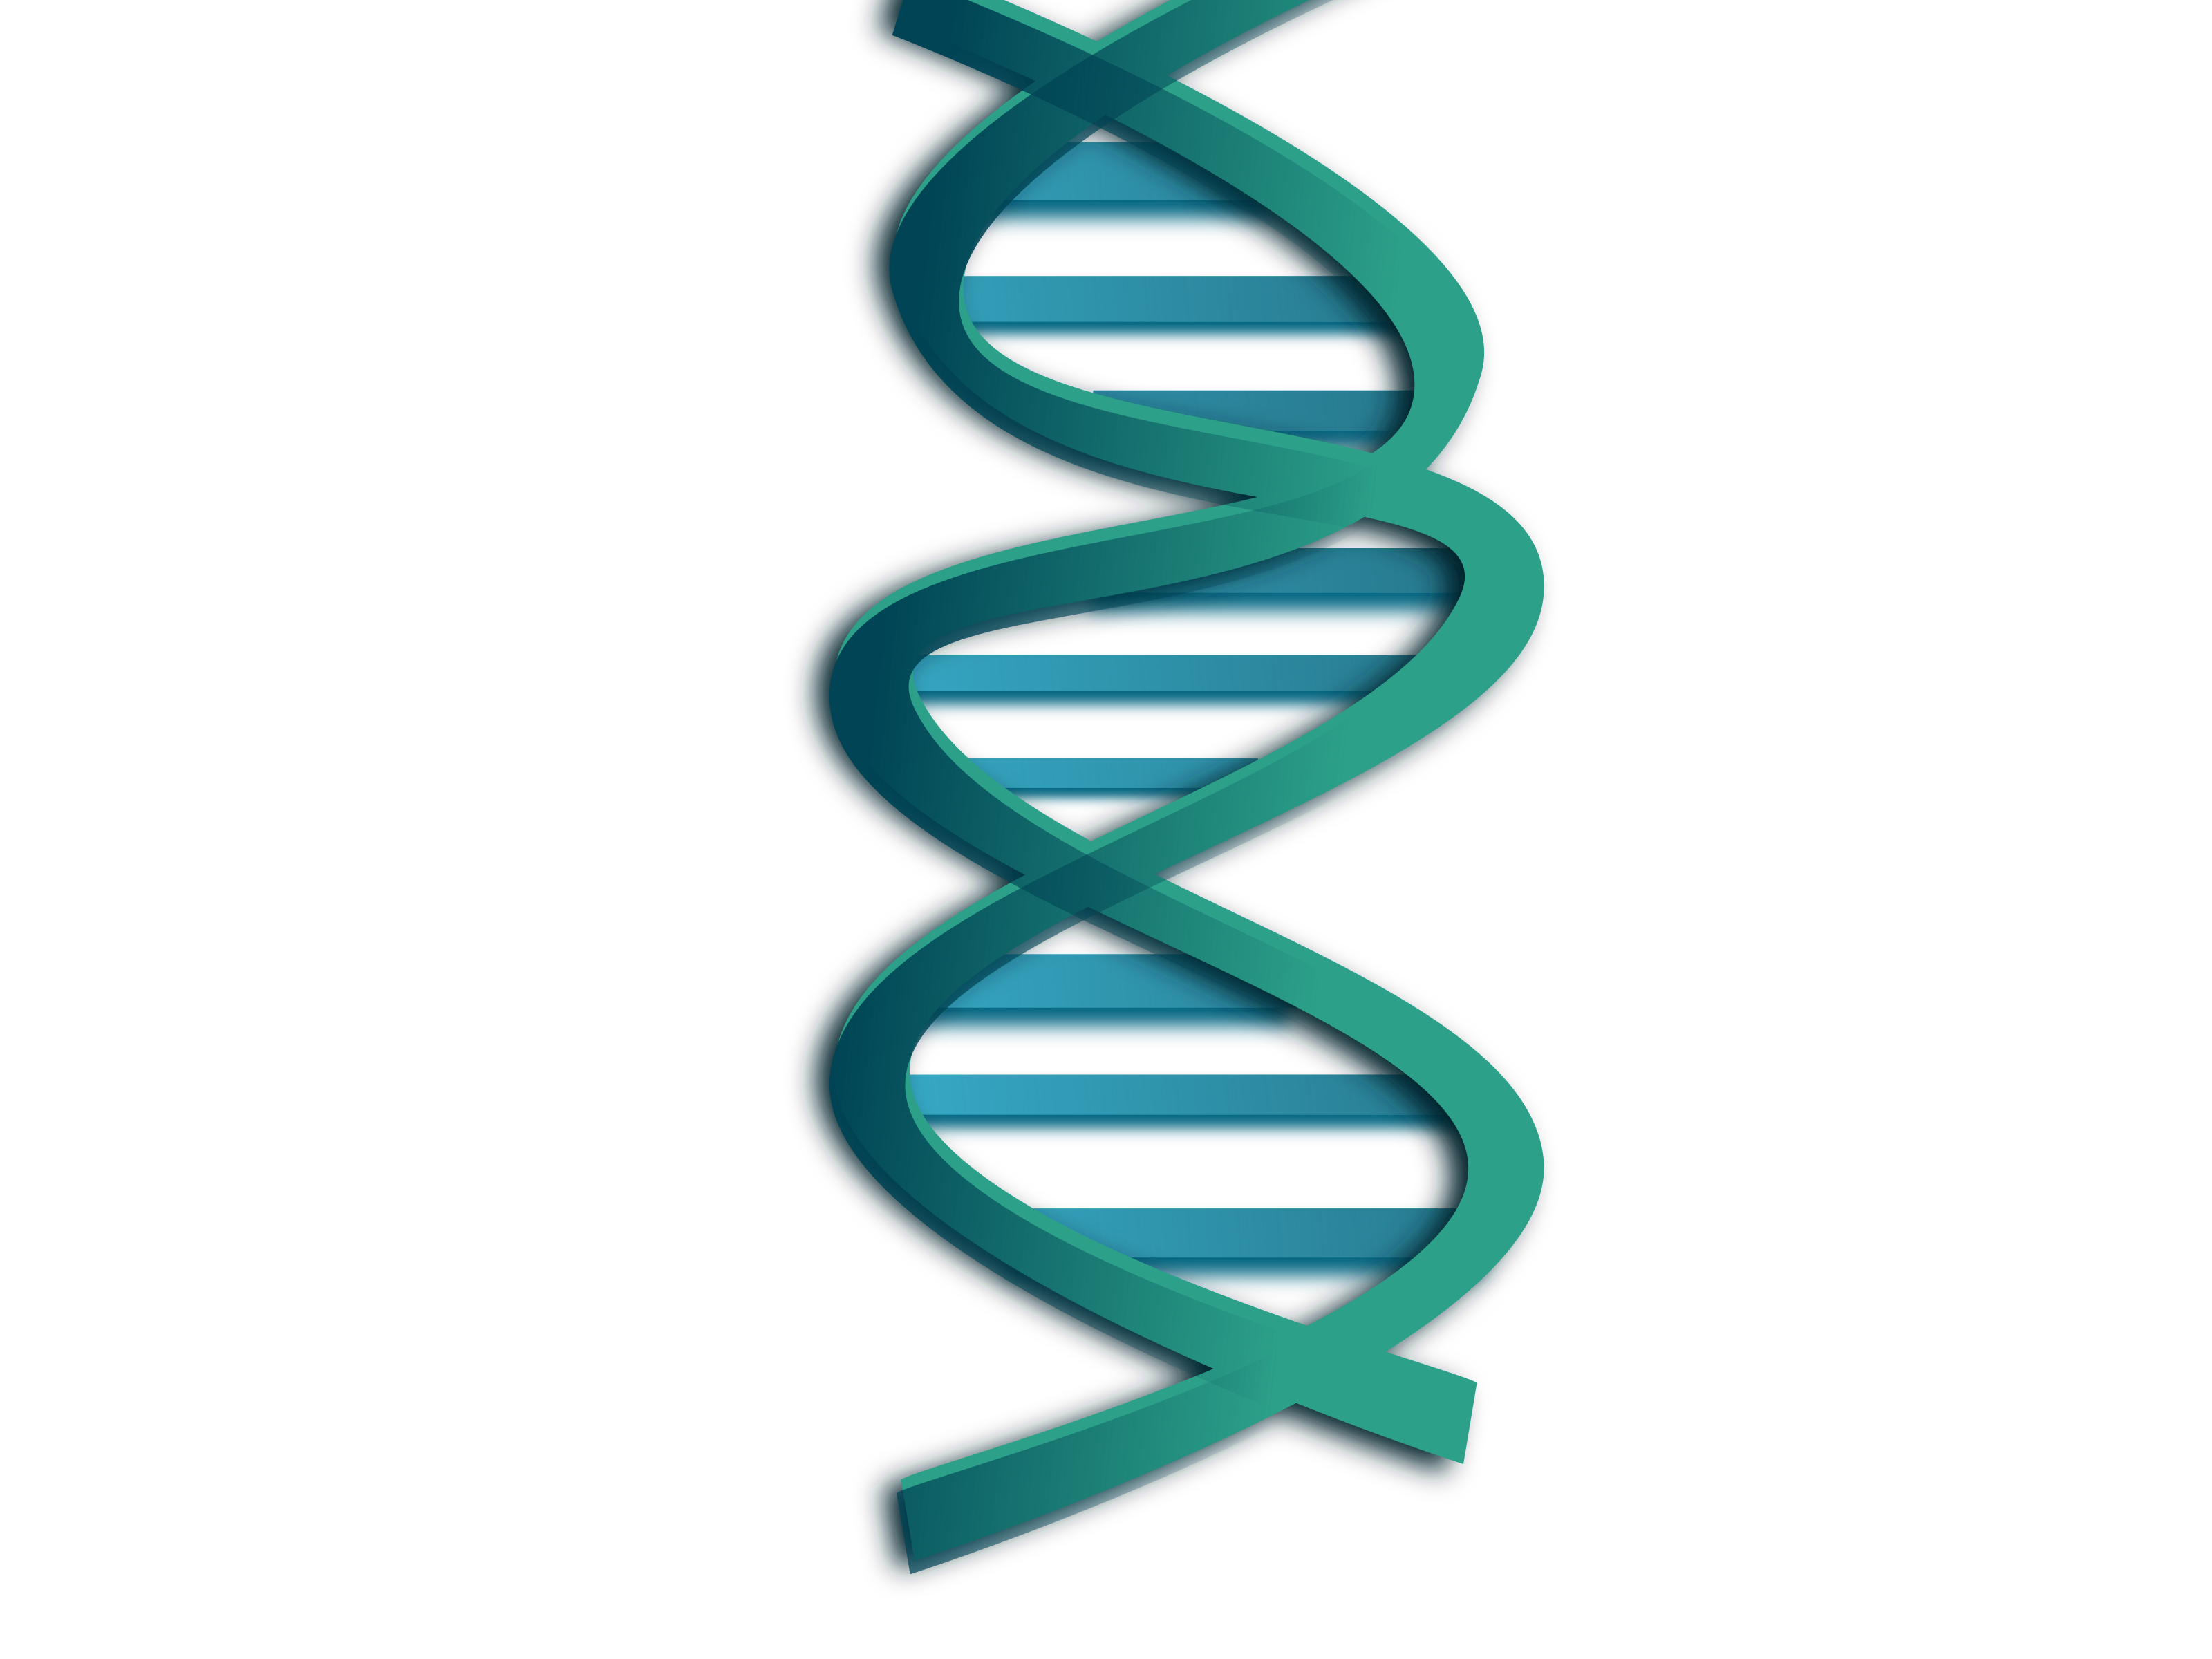 Helix Dna - ClipArt Best